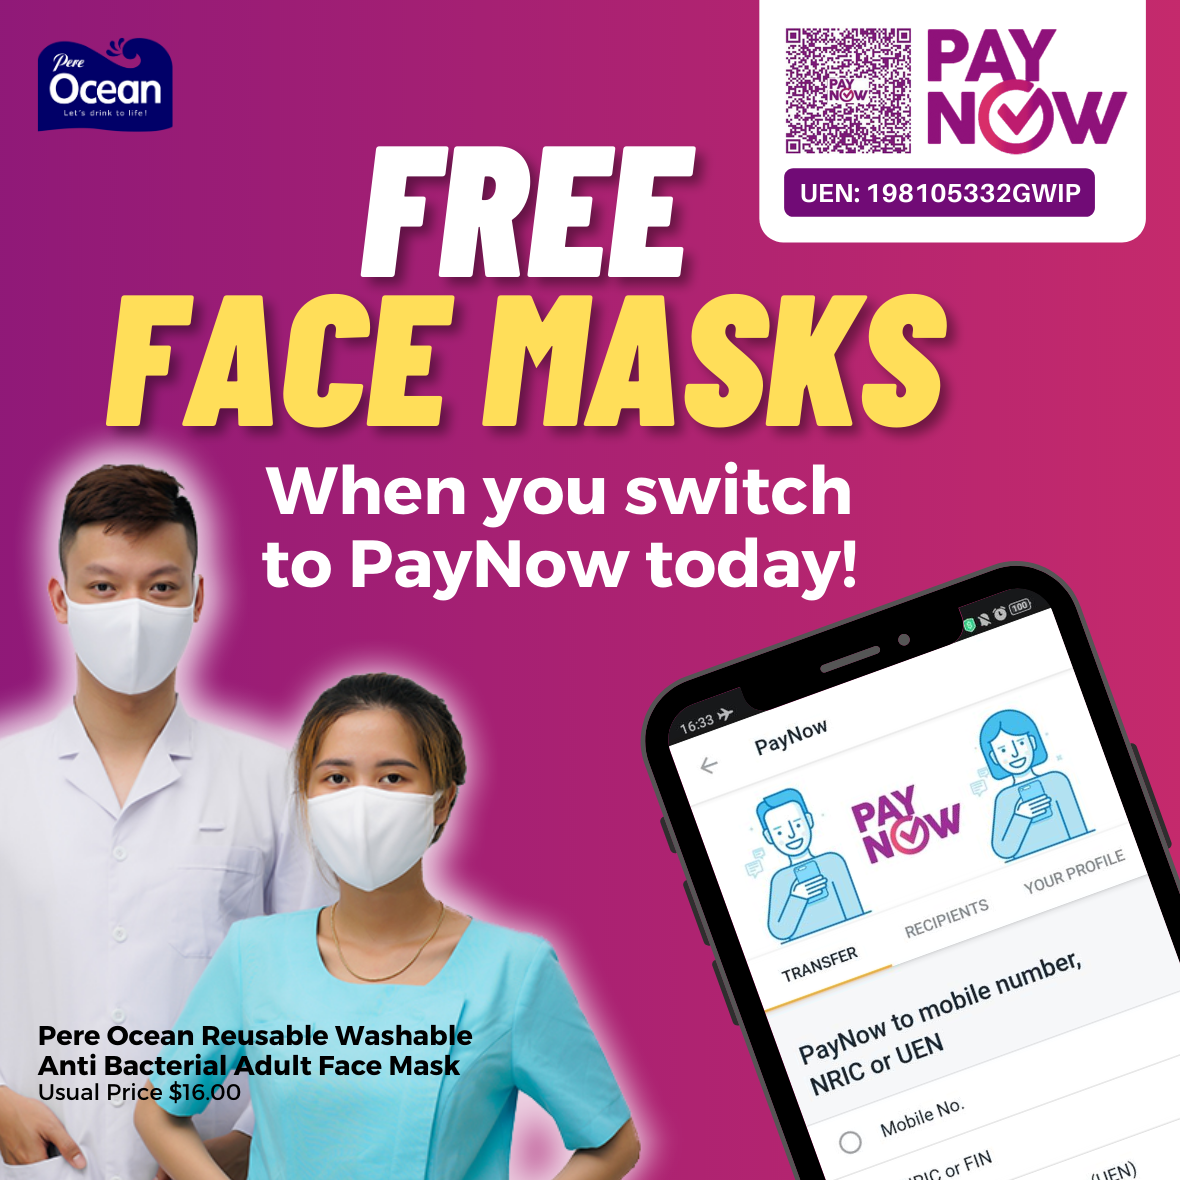 Pere Ocean Switch to PayNow Today Redeem Free Reusable Face Masks